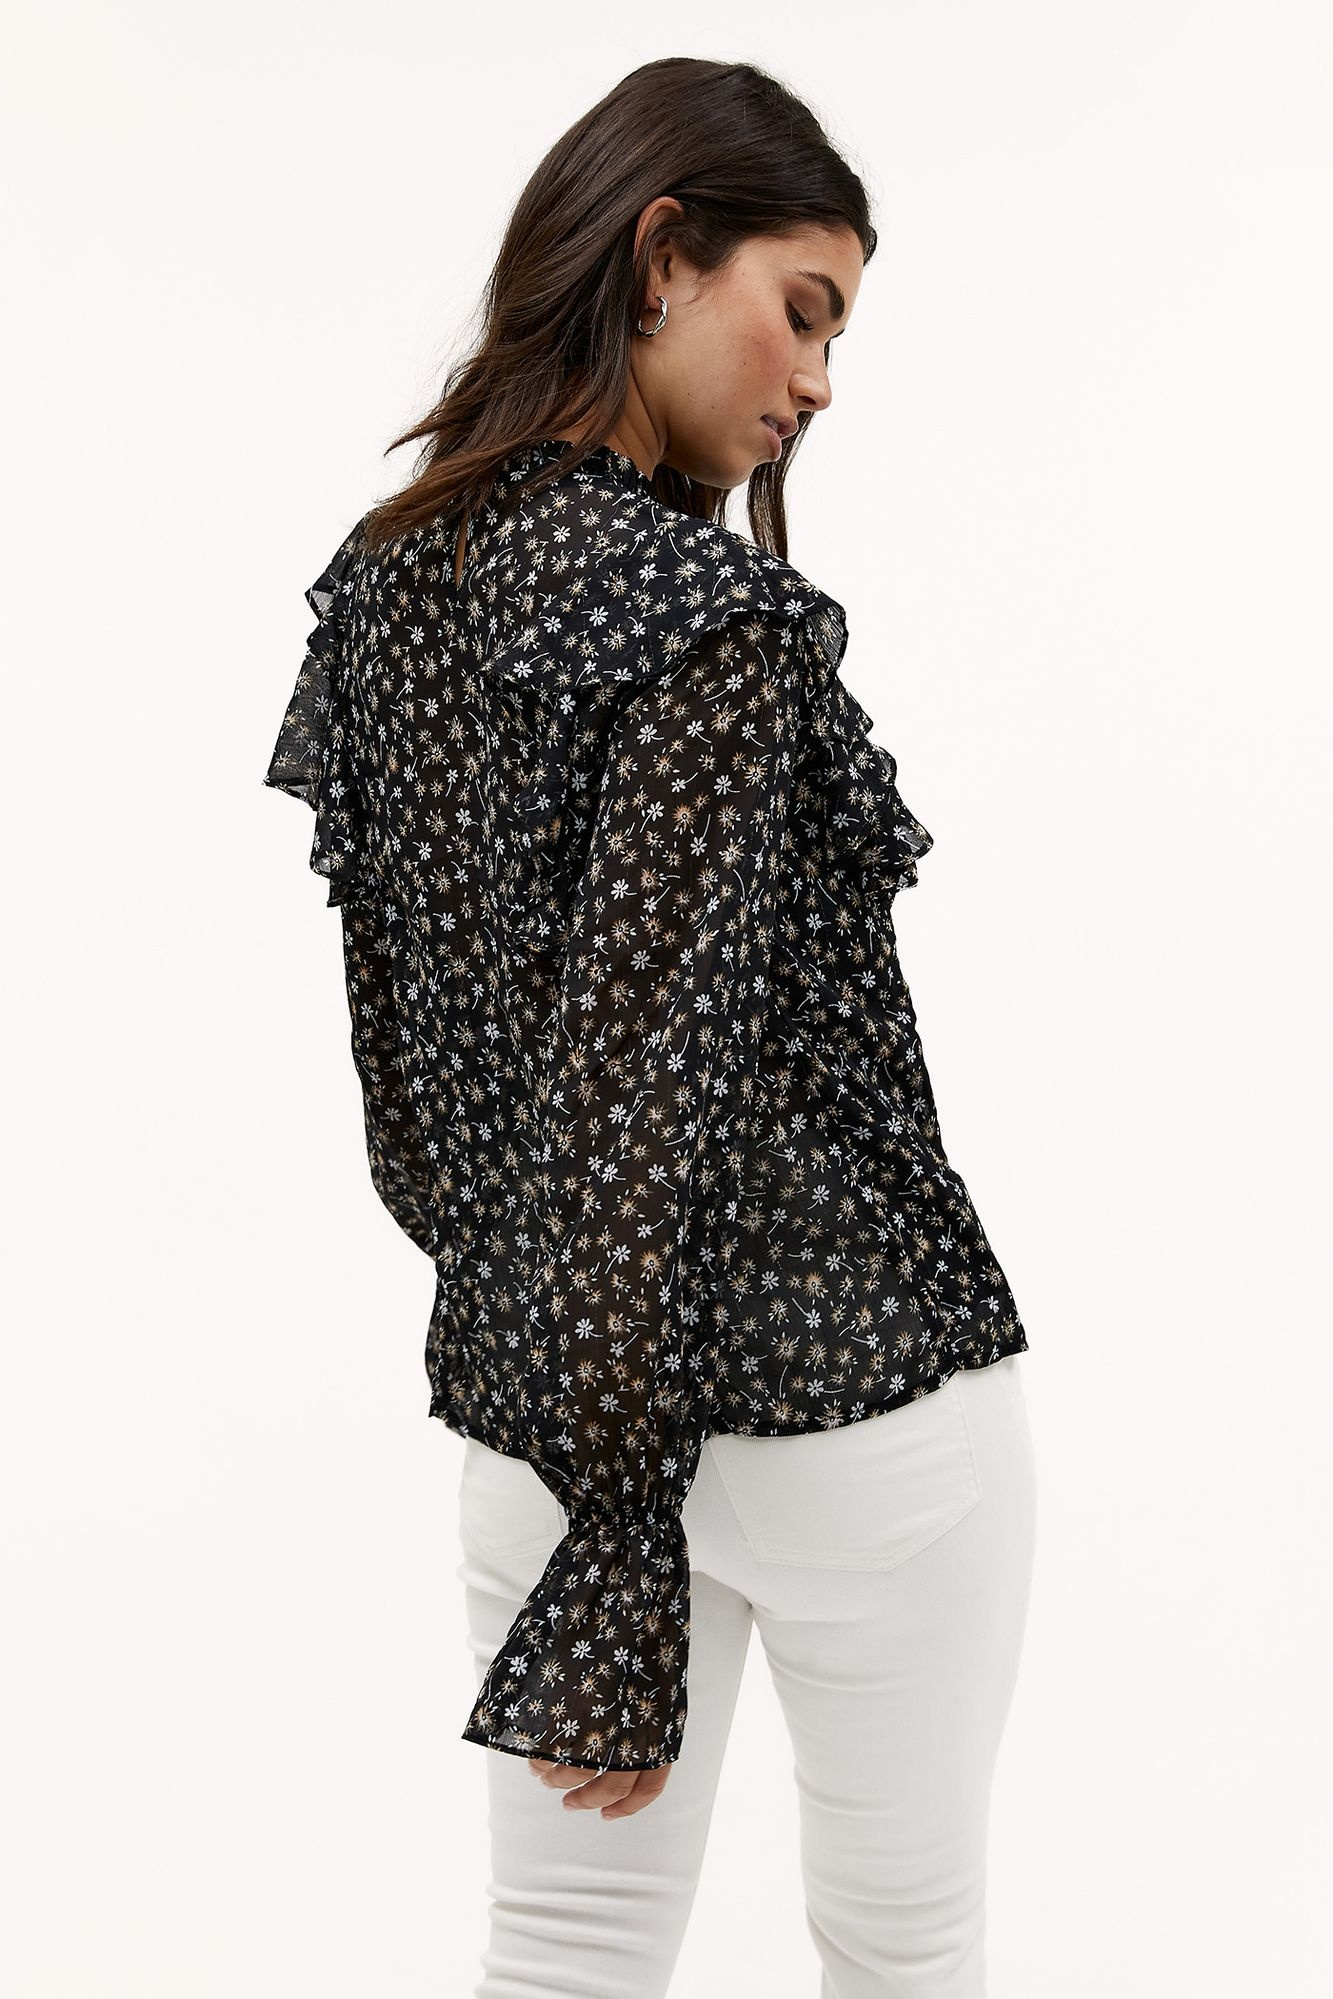 Blouse Day in town Black-2